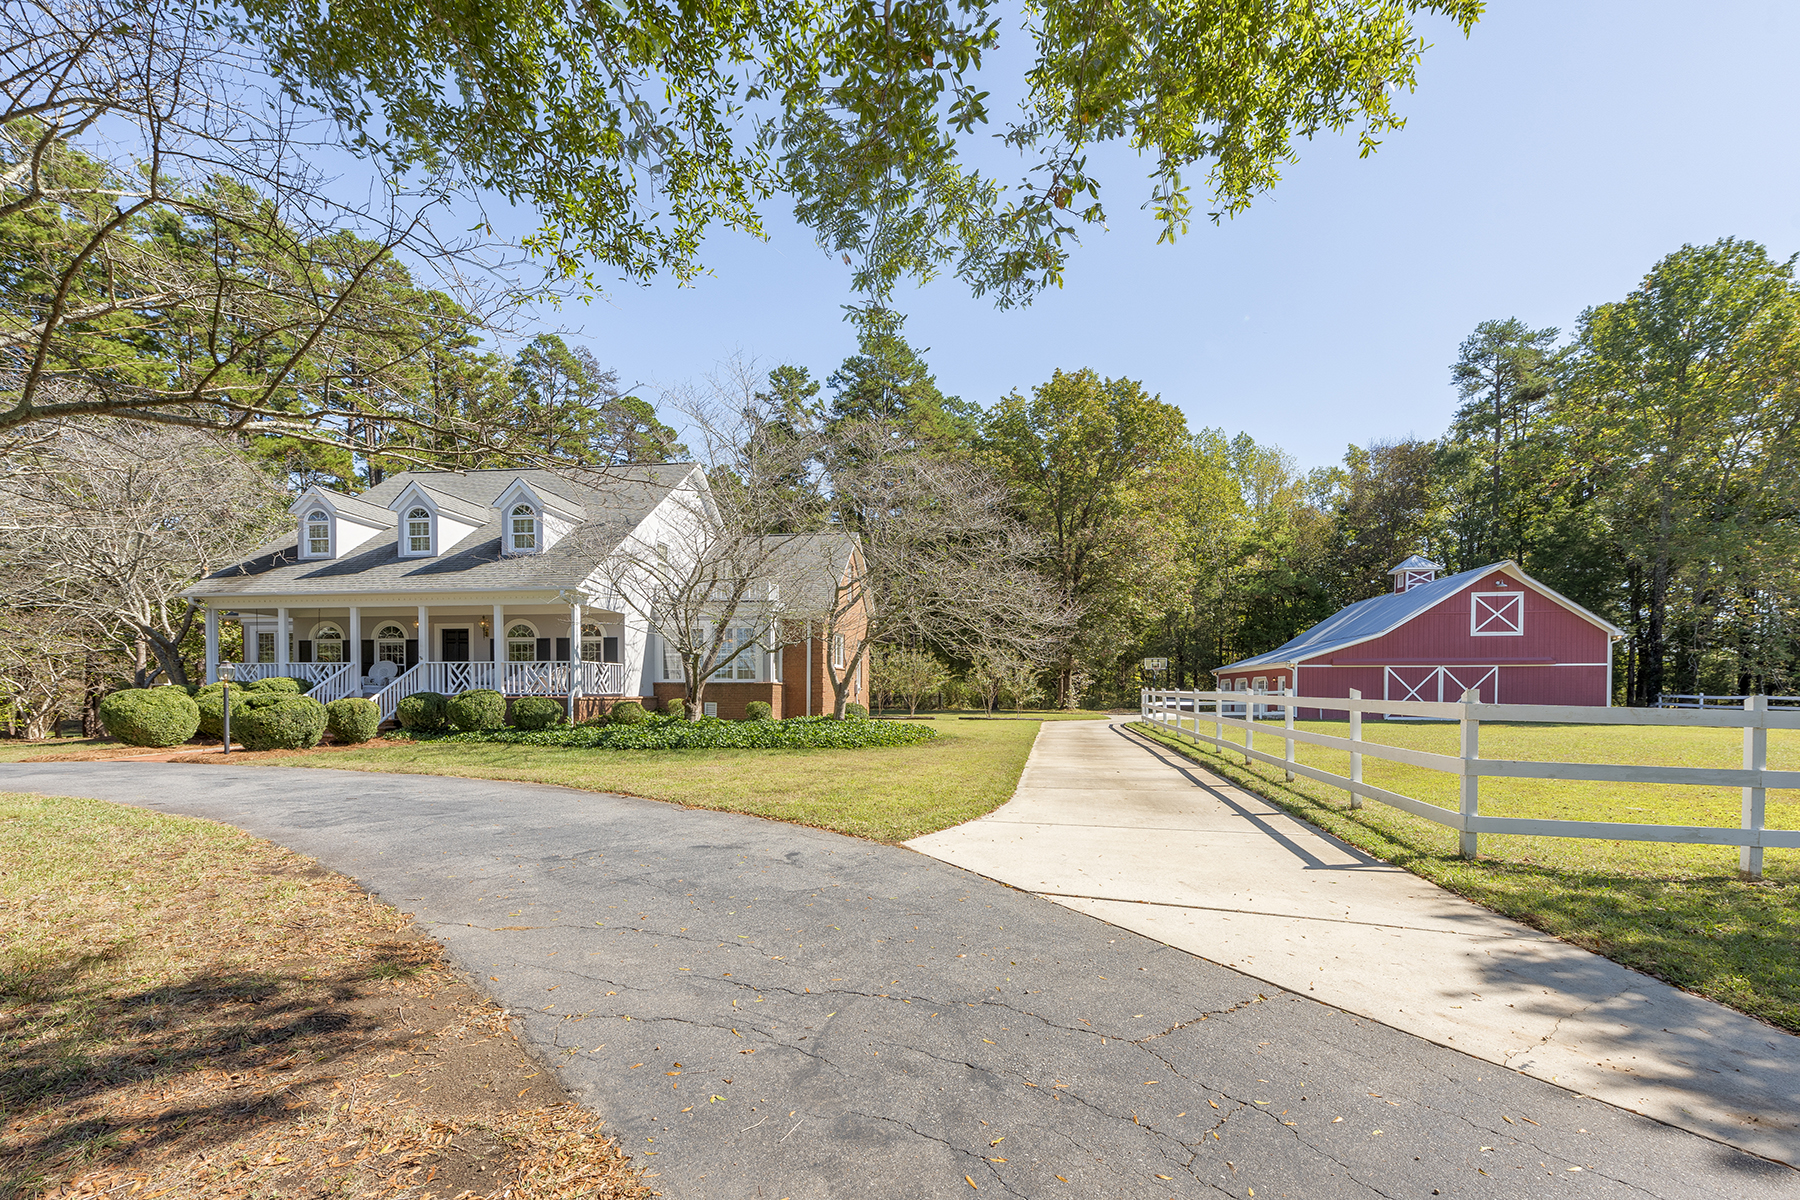 Single Family Homes for Active at Mount Pleasant 570 Moose Rd Mount Pleasant, North Carolina 28124 United States